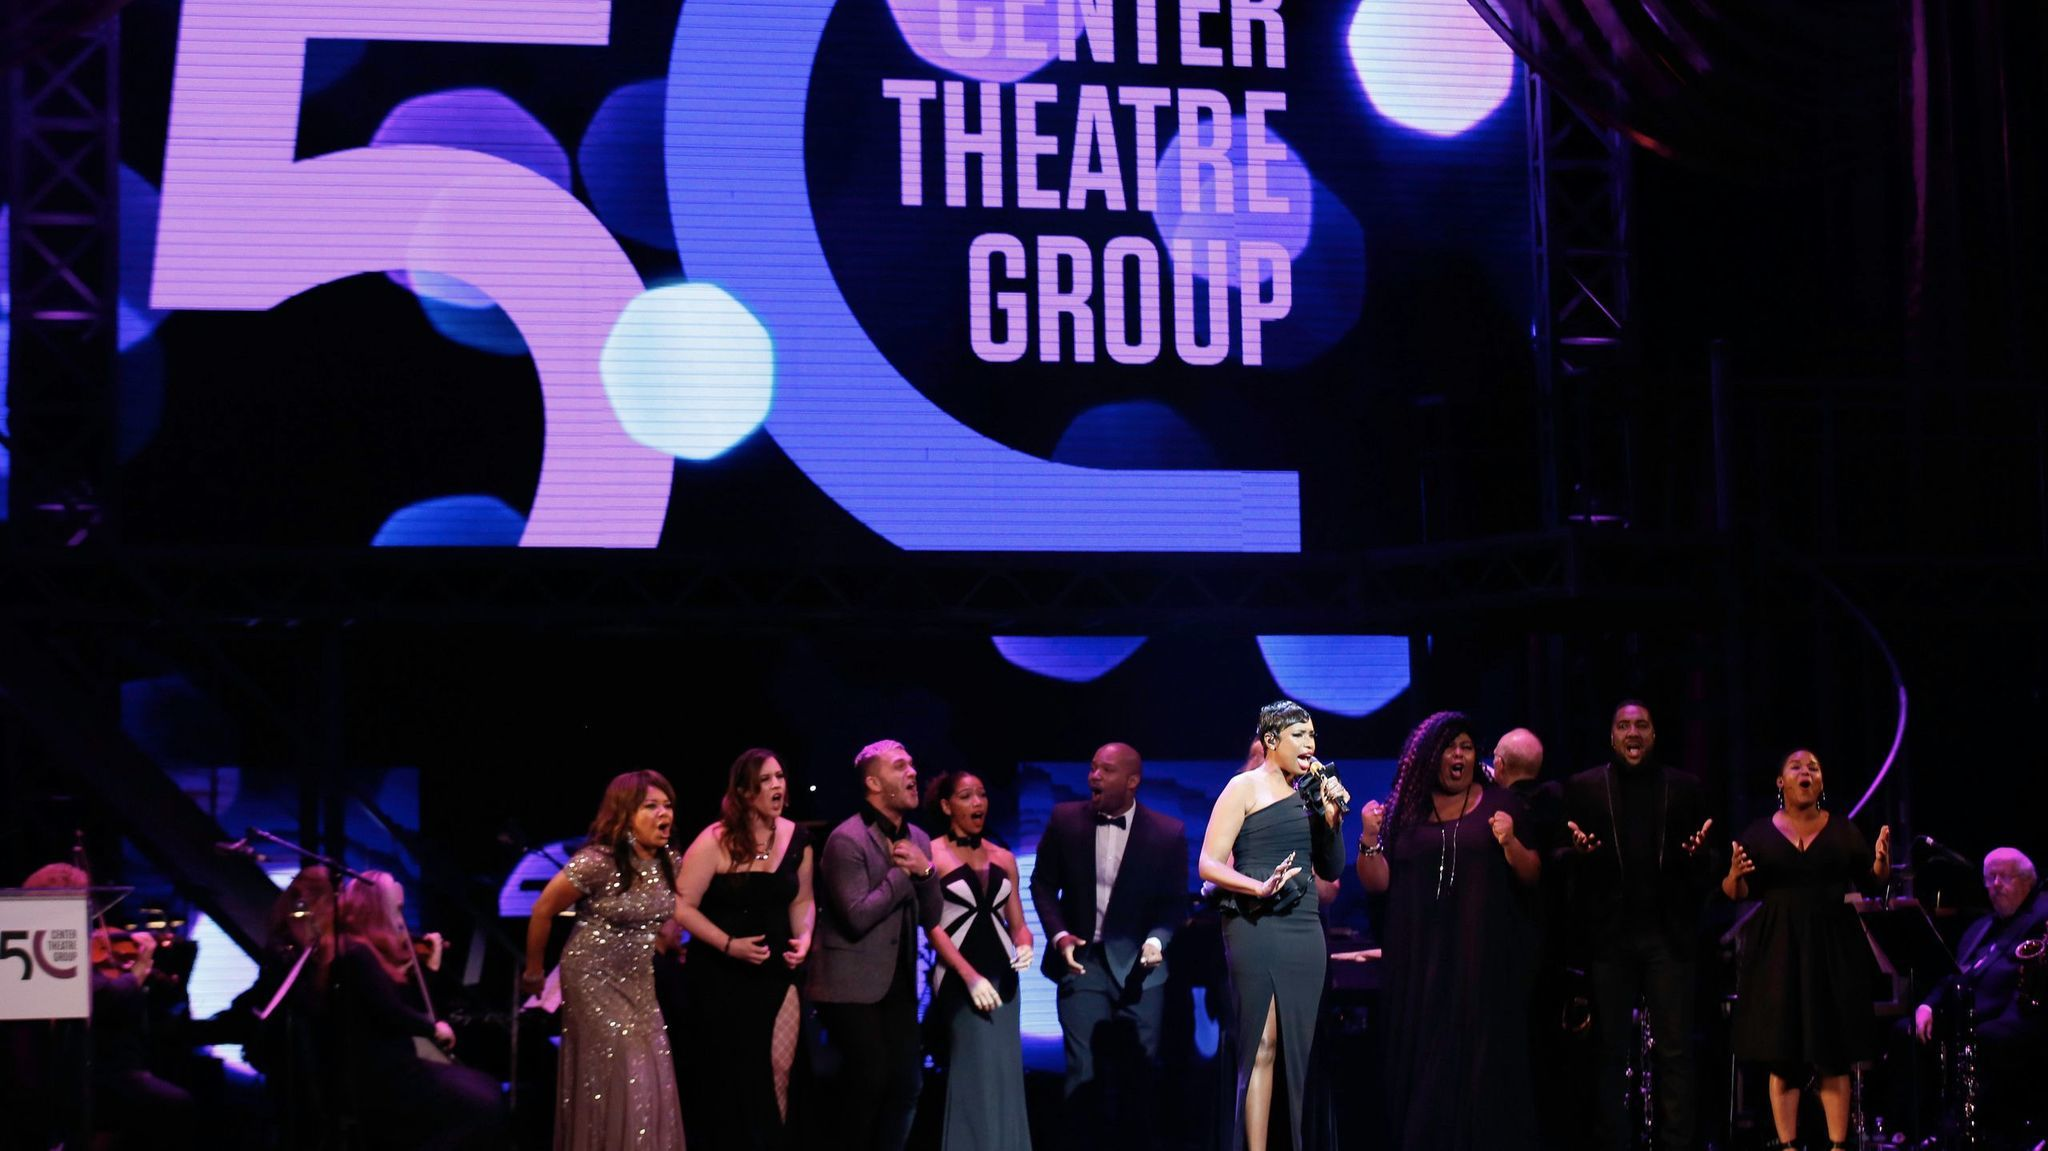 Jennifer Hudson, center, performs during Center Theatre Group''s golden anniversary celebration at the Ahmanson Theatre on May 20, 2017, in Los Angeles.